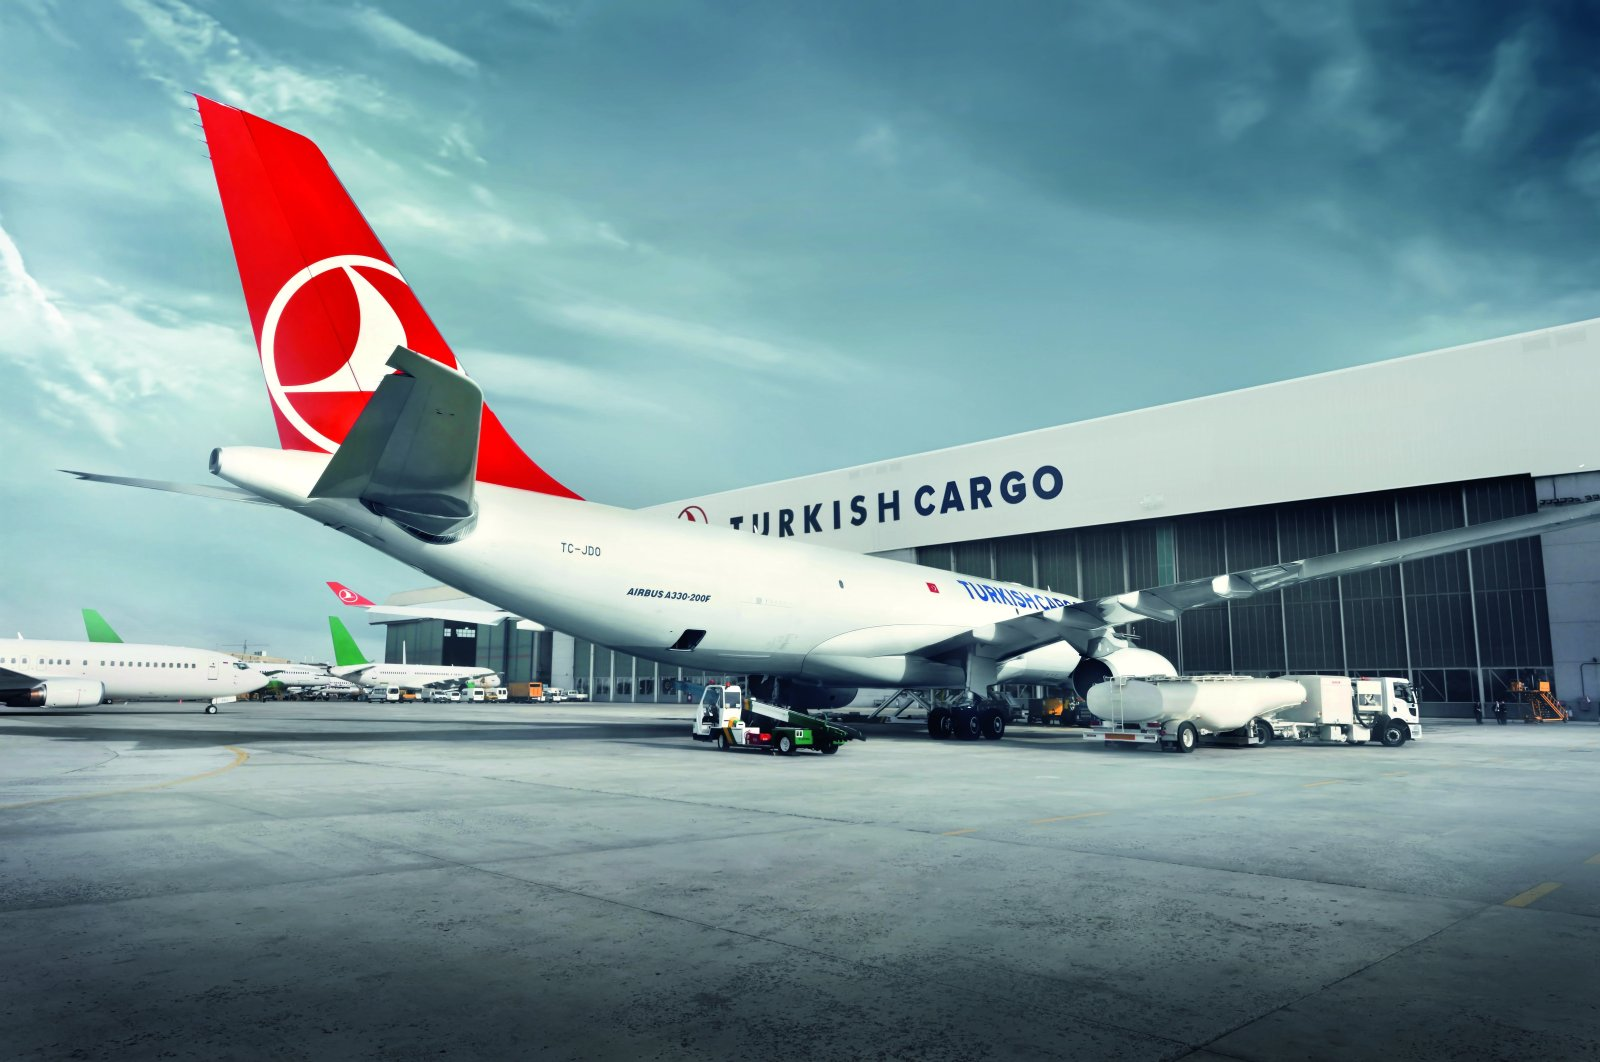 A cargo aircraft of Turkish Cargo, a brand of Turkish Airlines (THY), at the now-closed Atatürk Airport, Istanbul, Turkey, Oct. 31, 2017. (AA Photo)